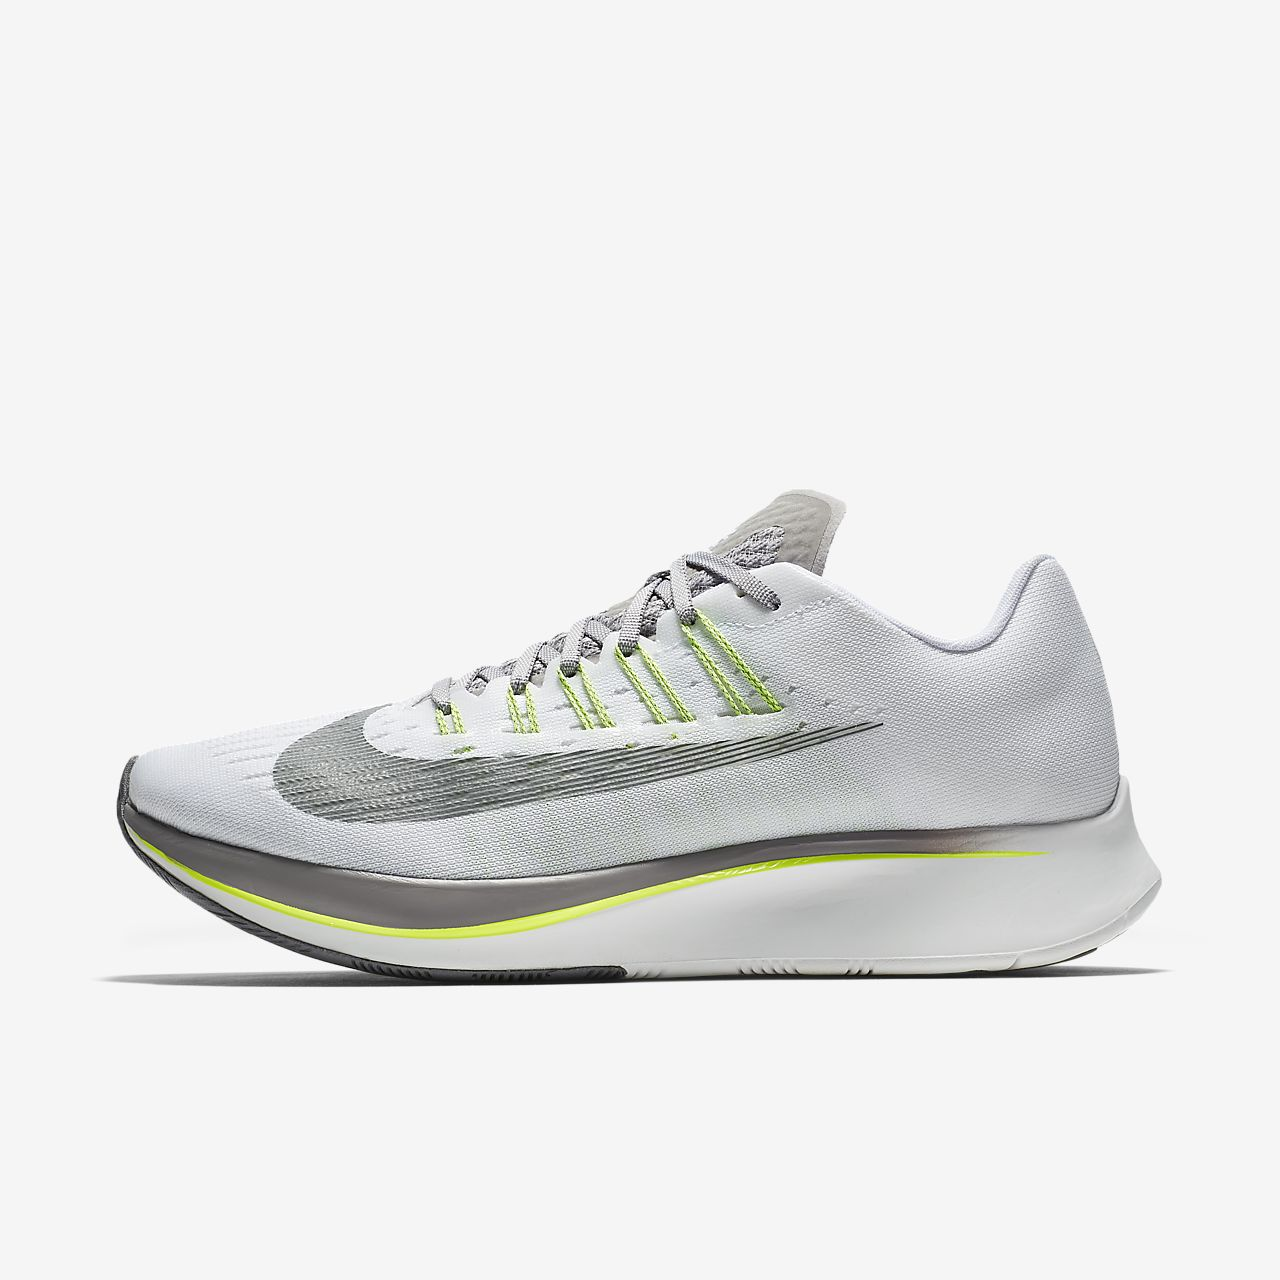 sports shoes a7a21 3e6de ... Nike Zoom Fly Men s Running Shoe